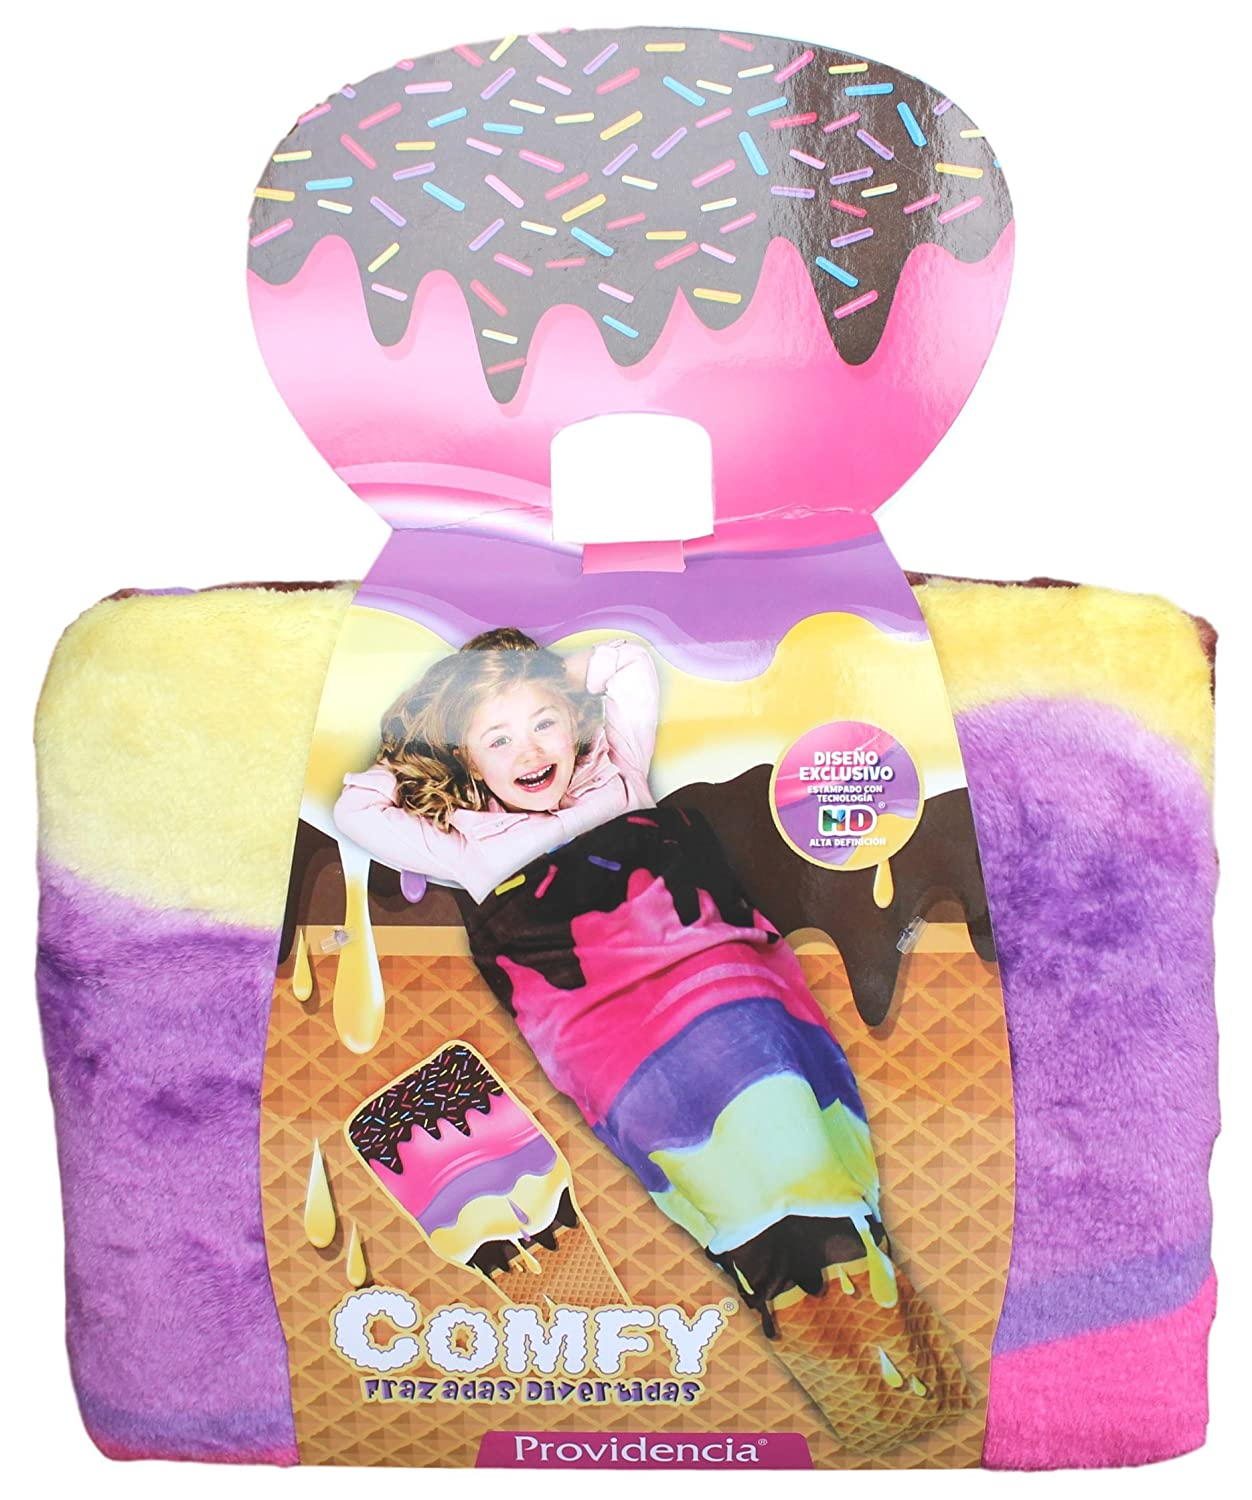 Amazon.com: Comfy Tails Super Soft Blankets For Kids 41